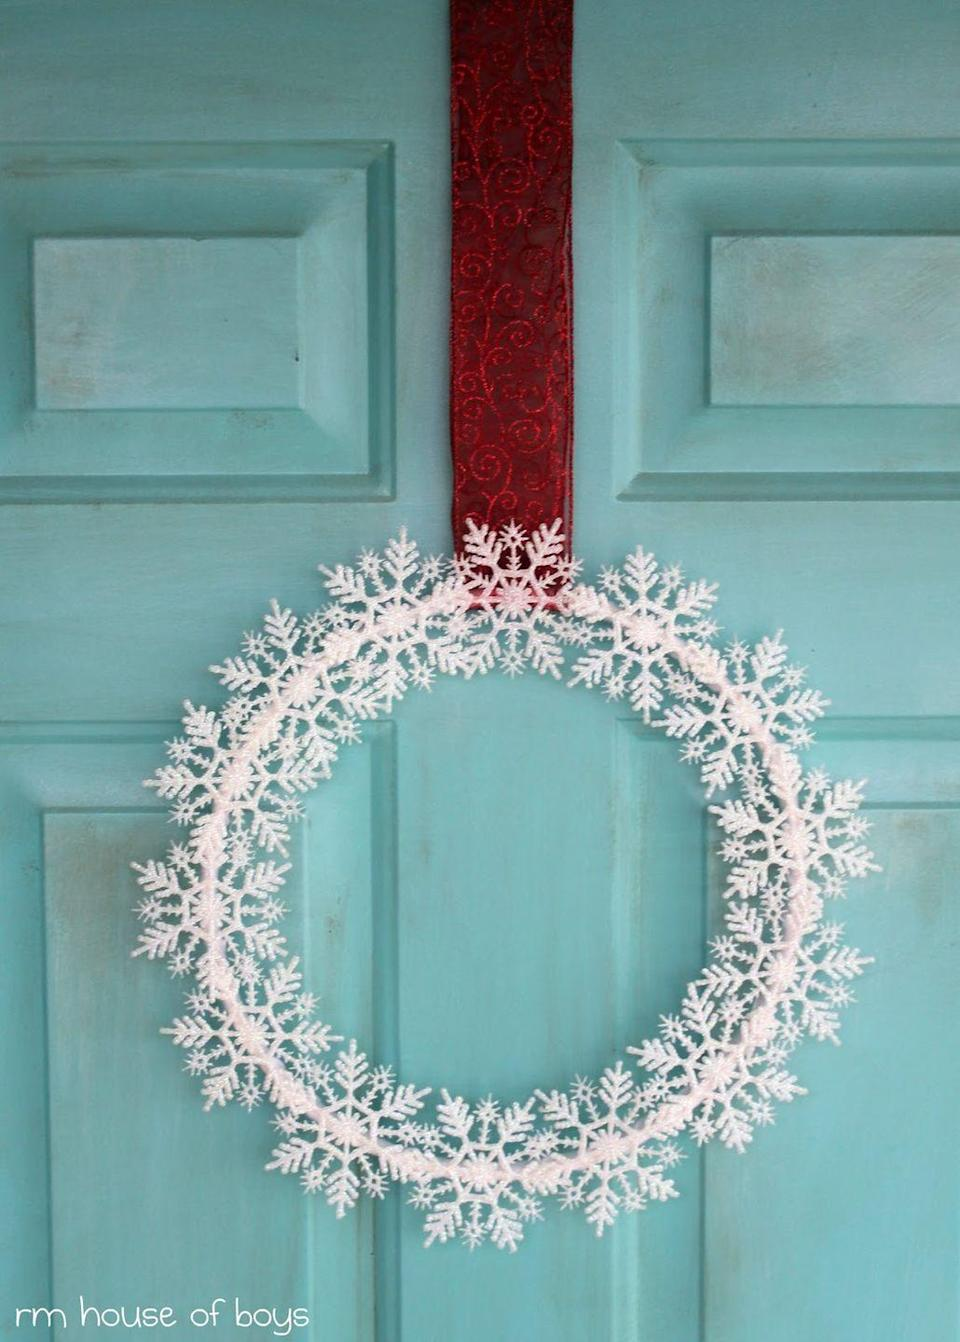 "<p>Hang a wreath full of snowflakes from a bold ribbon for a color-block effect on an icy blue door (or any color door, really).<br></p><p><em><a href=""http://rmhouseofnoise.blogspot.com/2011/11/snowflakes-keep-falling-on-my-head.html"" rel=""nofollow noopener"" target=""_blank"" data-ylk=""slk:Get the tutorial at RM House of Boys »"" class=""link rapid-noclick-resp"">Get the tutorial at RM House of Boys »</a></em><br></p>"